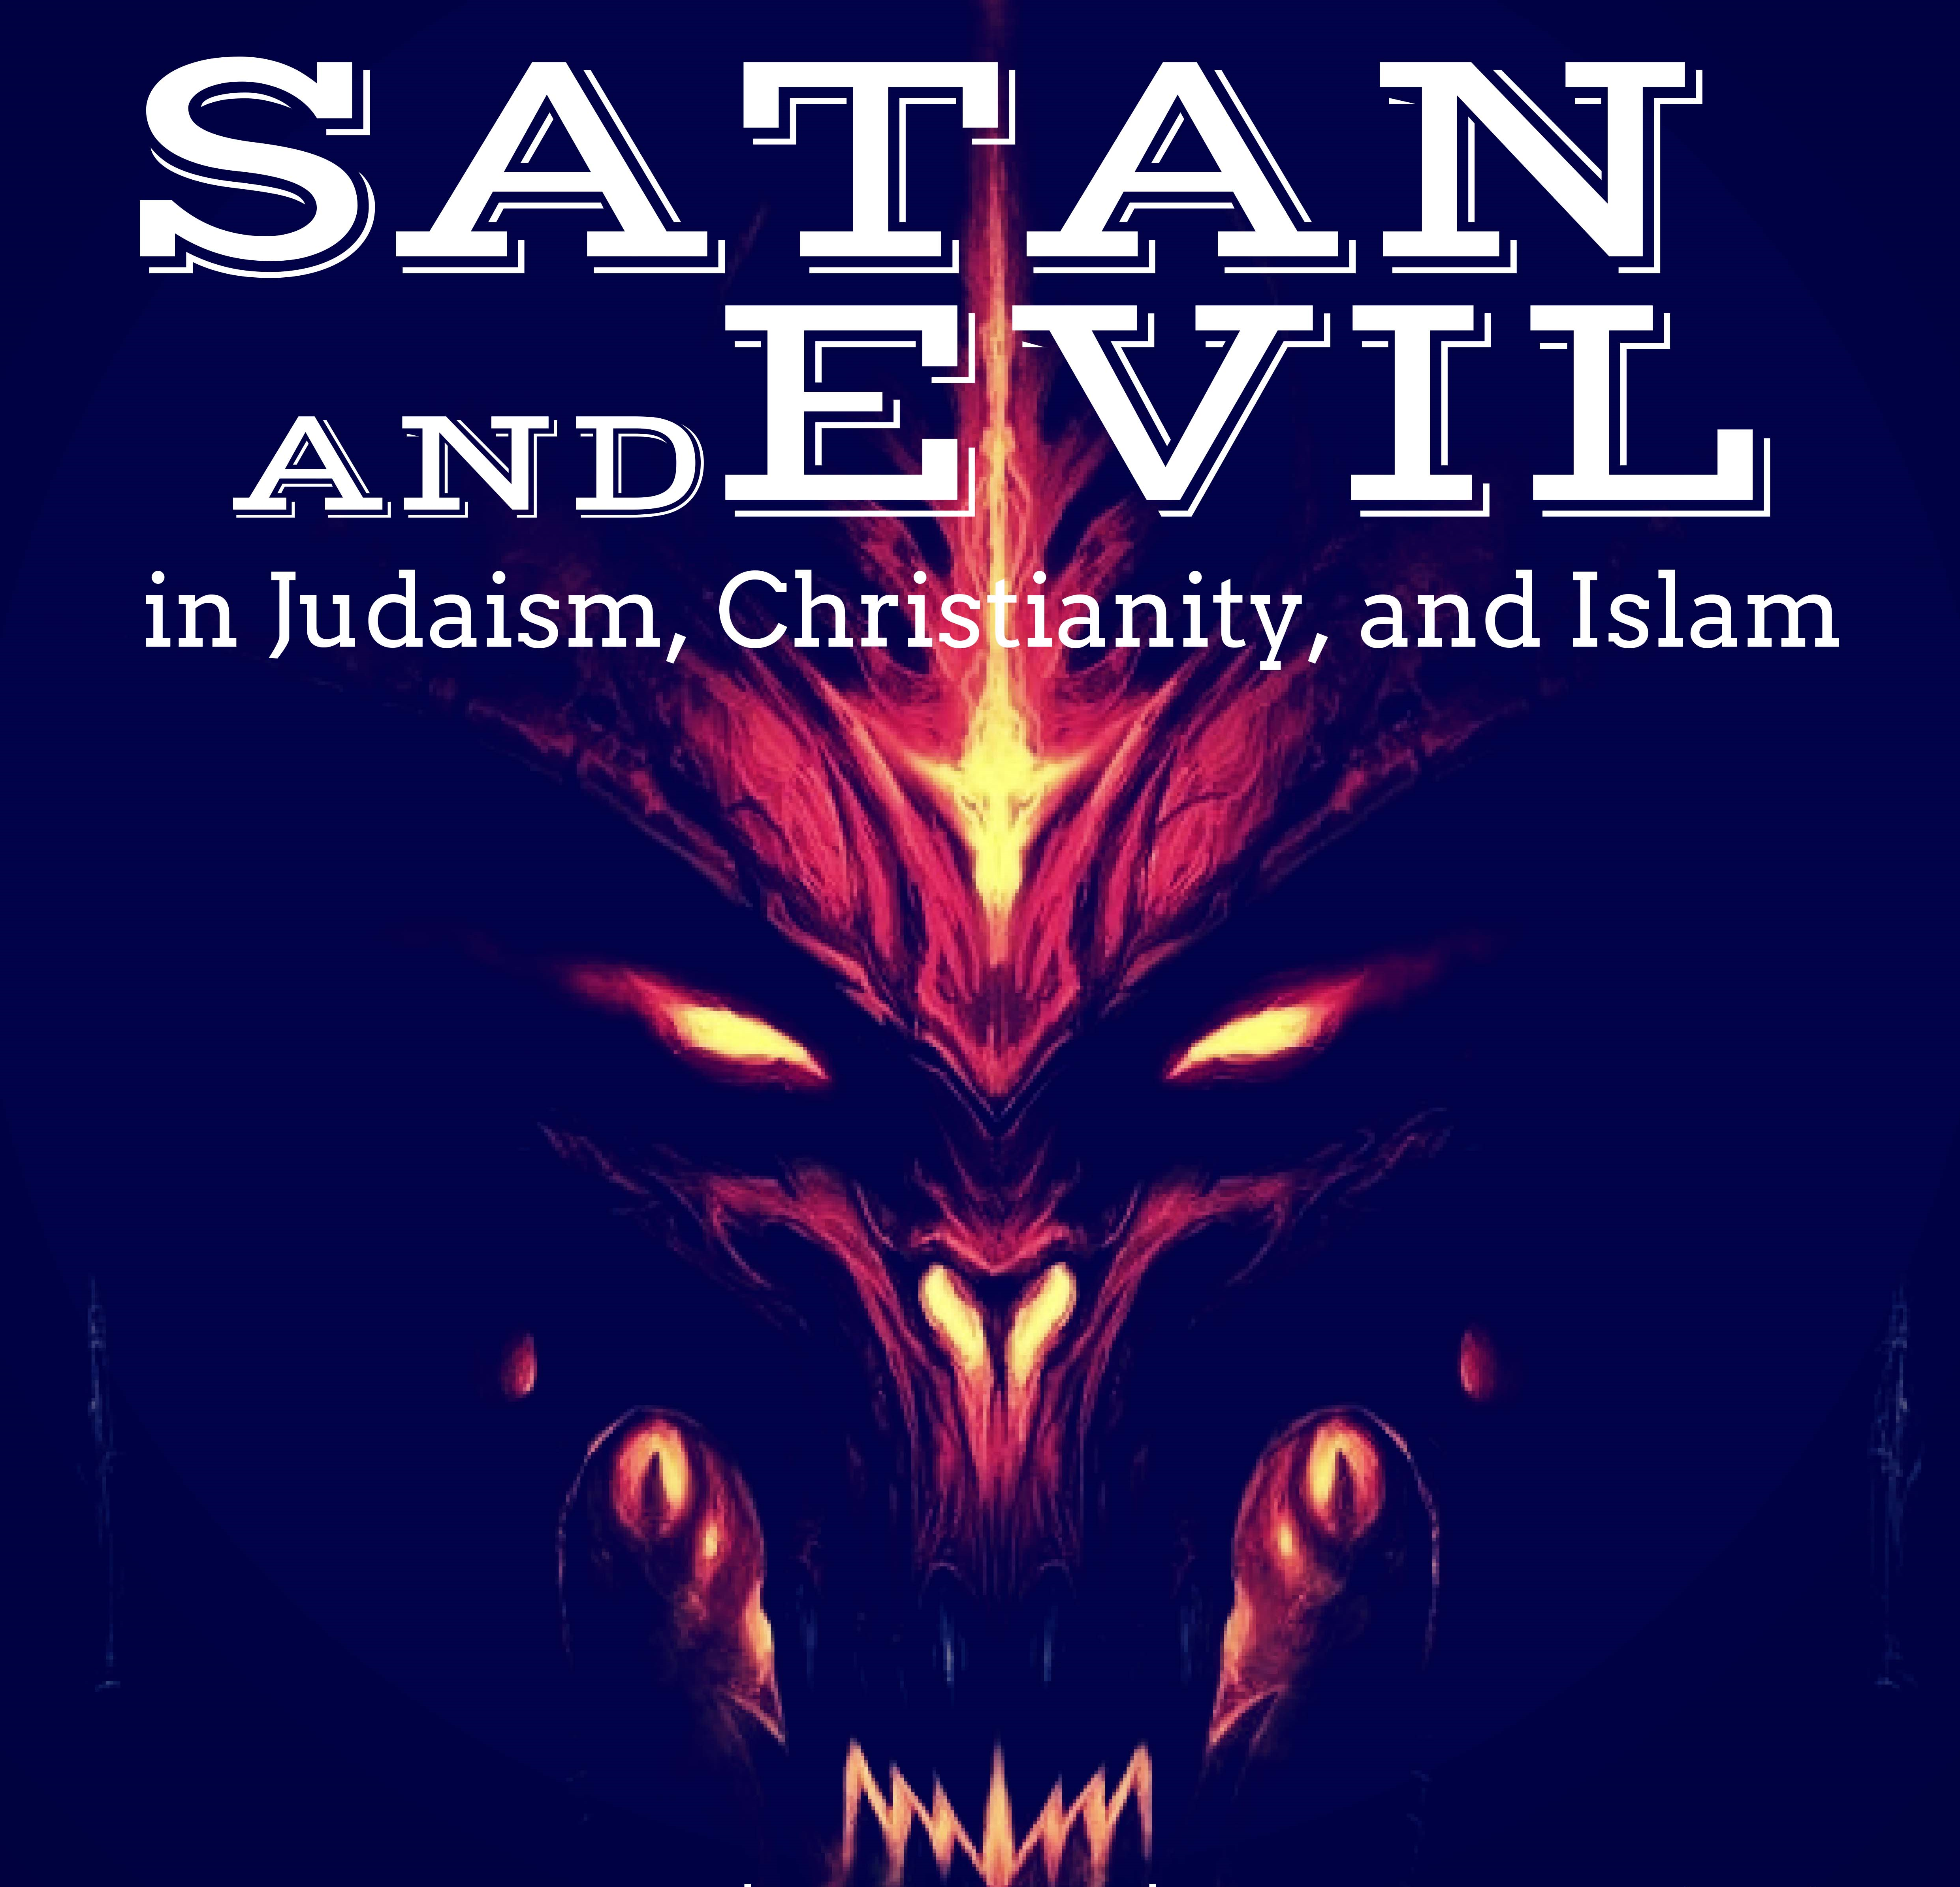 an analysis of evilness as the trademark of satans personality This work addresses the development of an equipment for the an analysis of professional licensing mechanisms analysis of one-degree-of-freedom planar mechanisms, used for teaching in the.